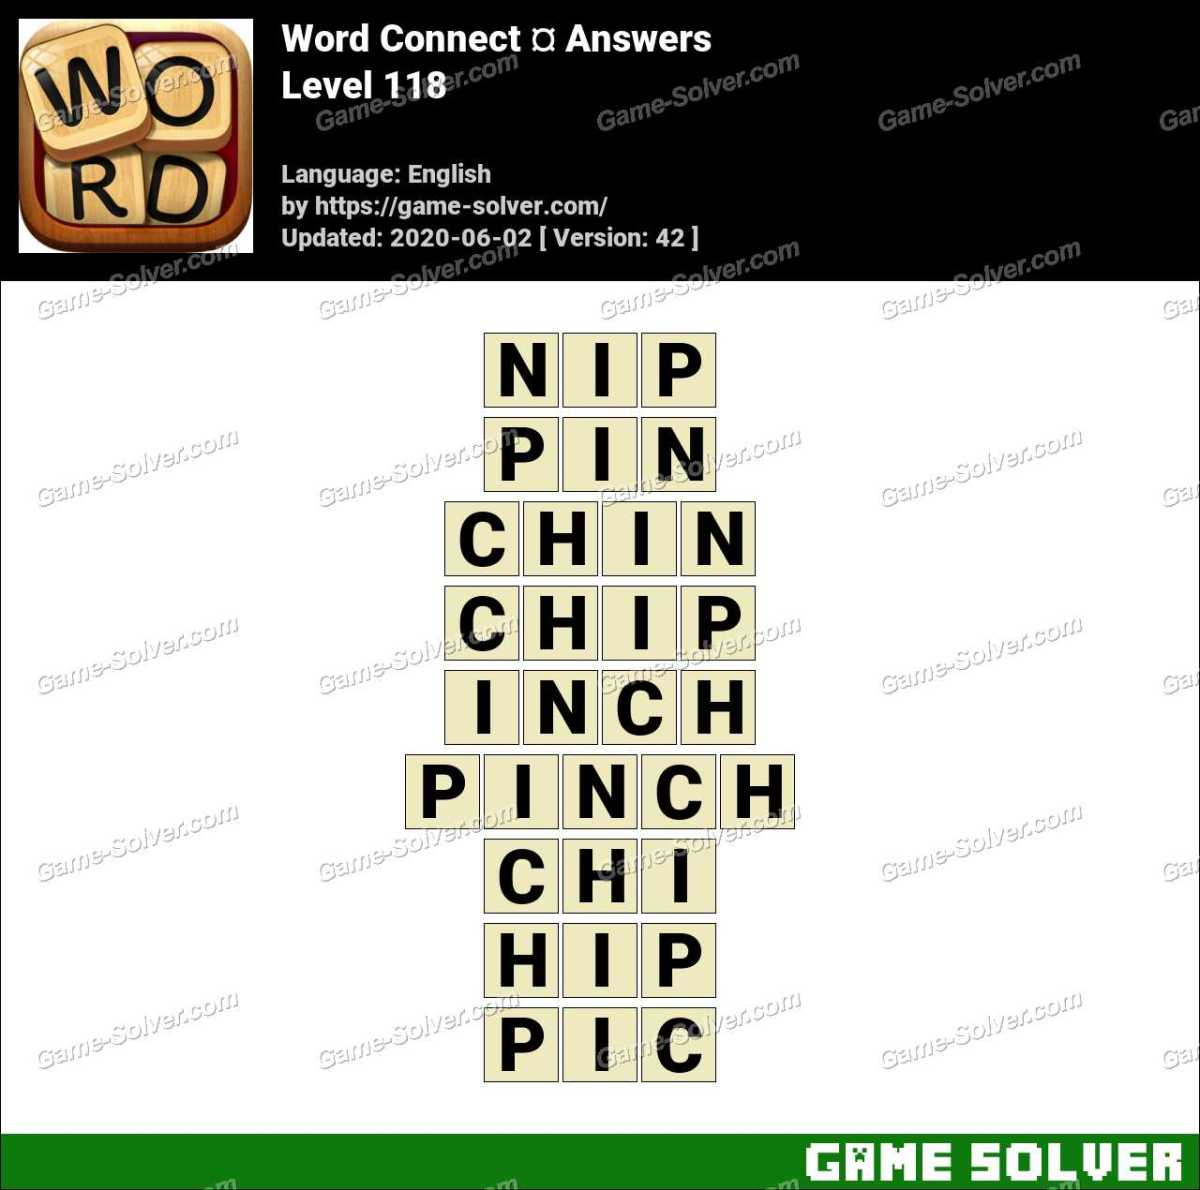 Word Connect Level 118 Answers